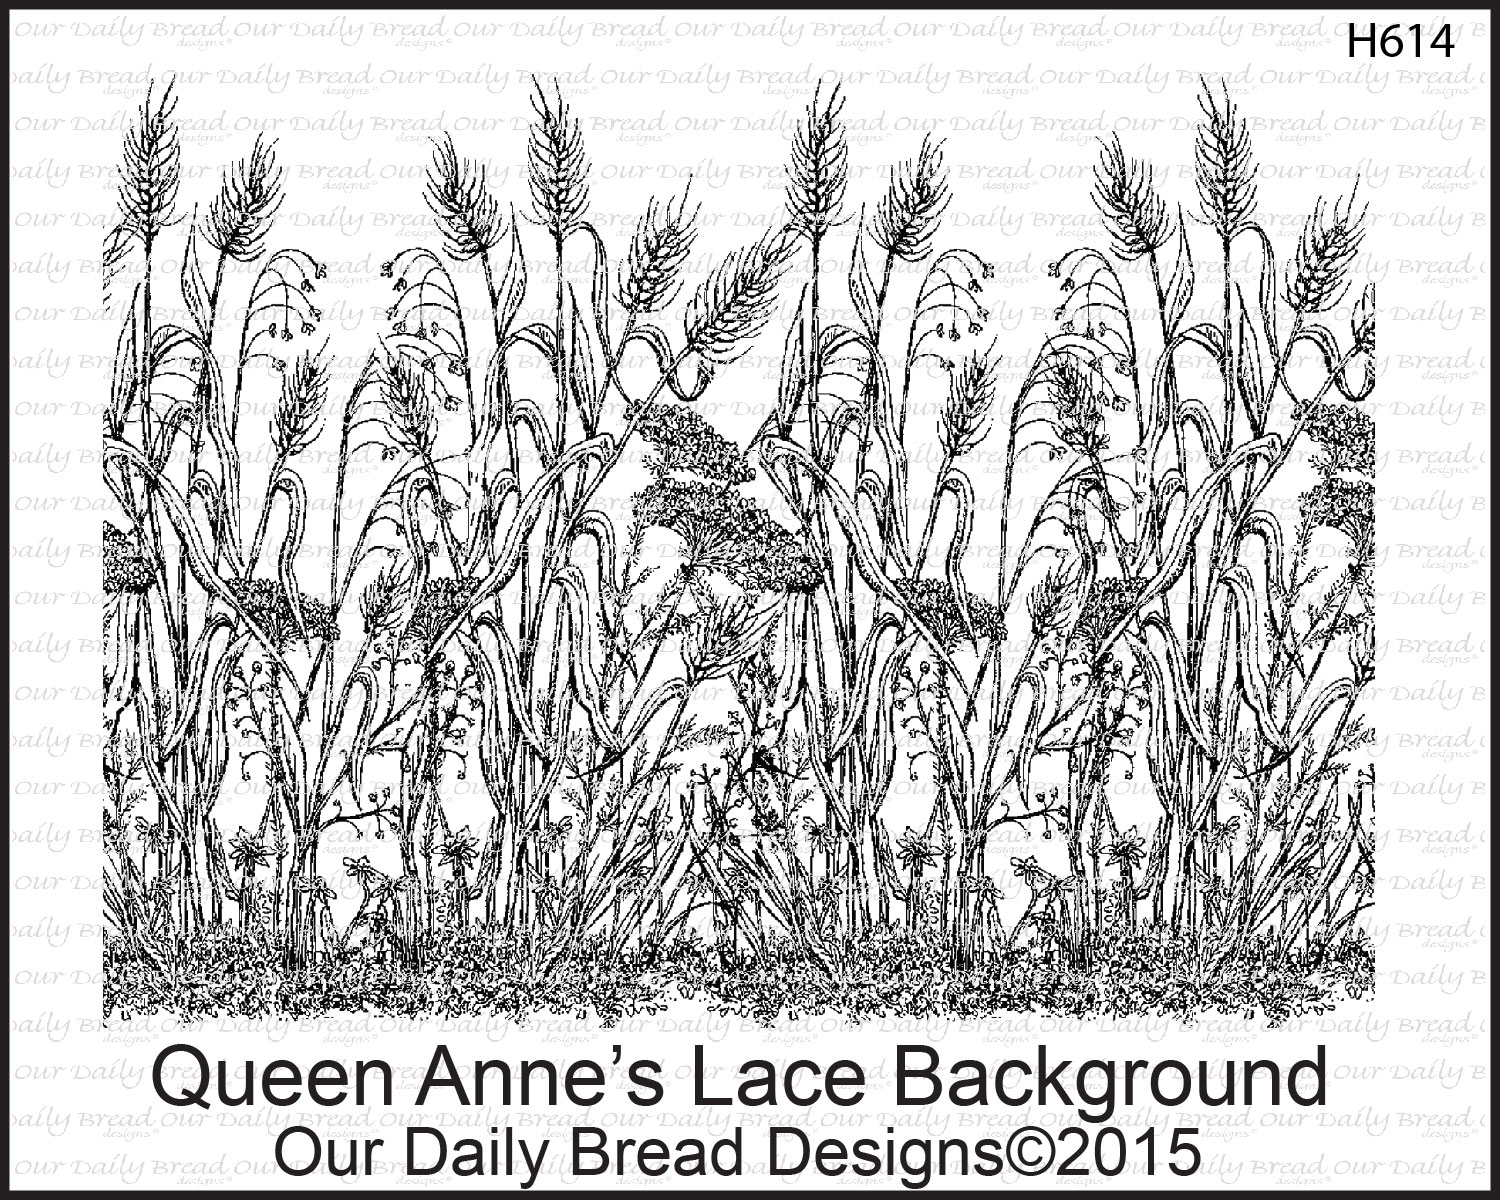 Stamps - Our Daily Bread Designs Queen Anne's Lace Background